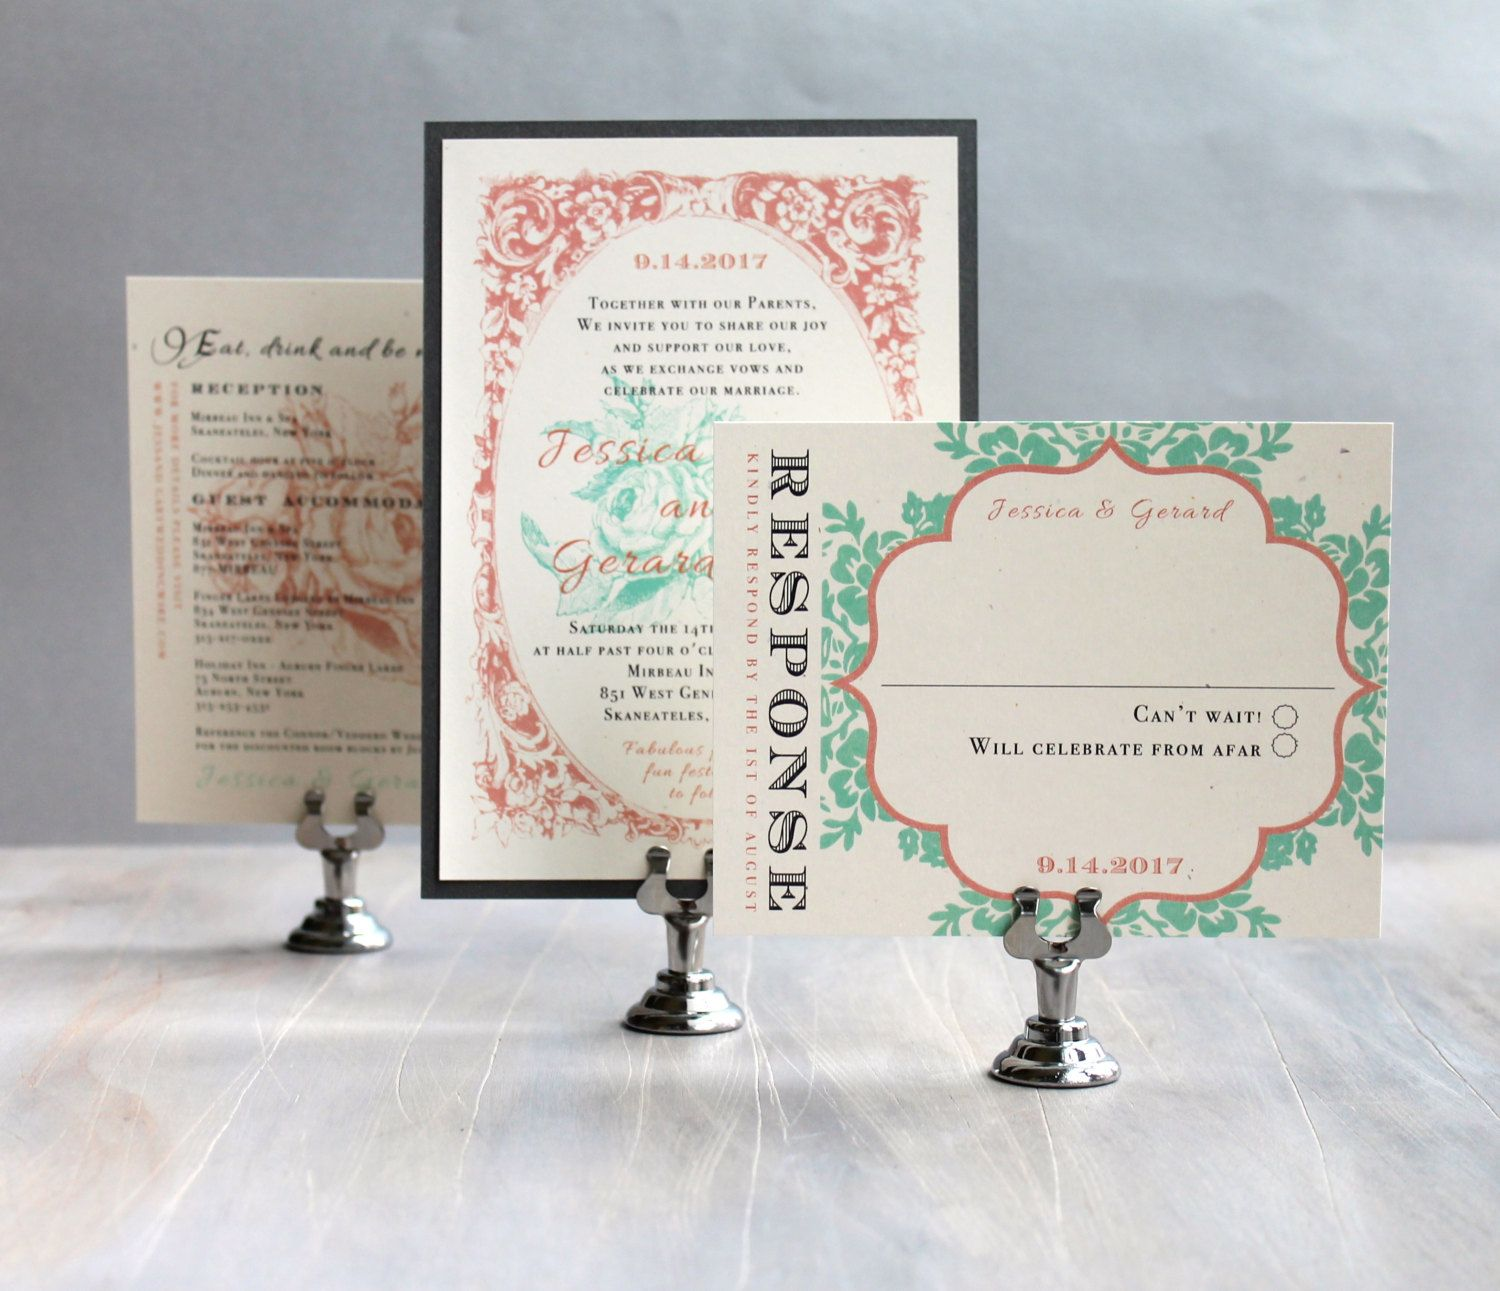 Vintage Lace ~ A Romantic Wedding Inspiration Board in Pink and Mint by Beacon Lane